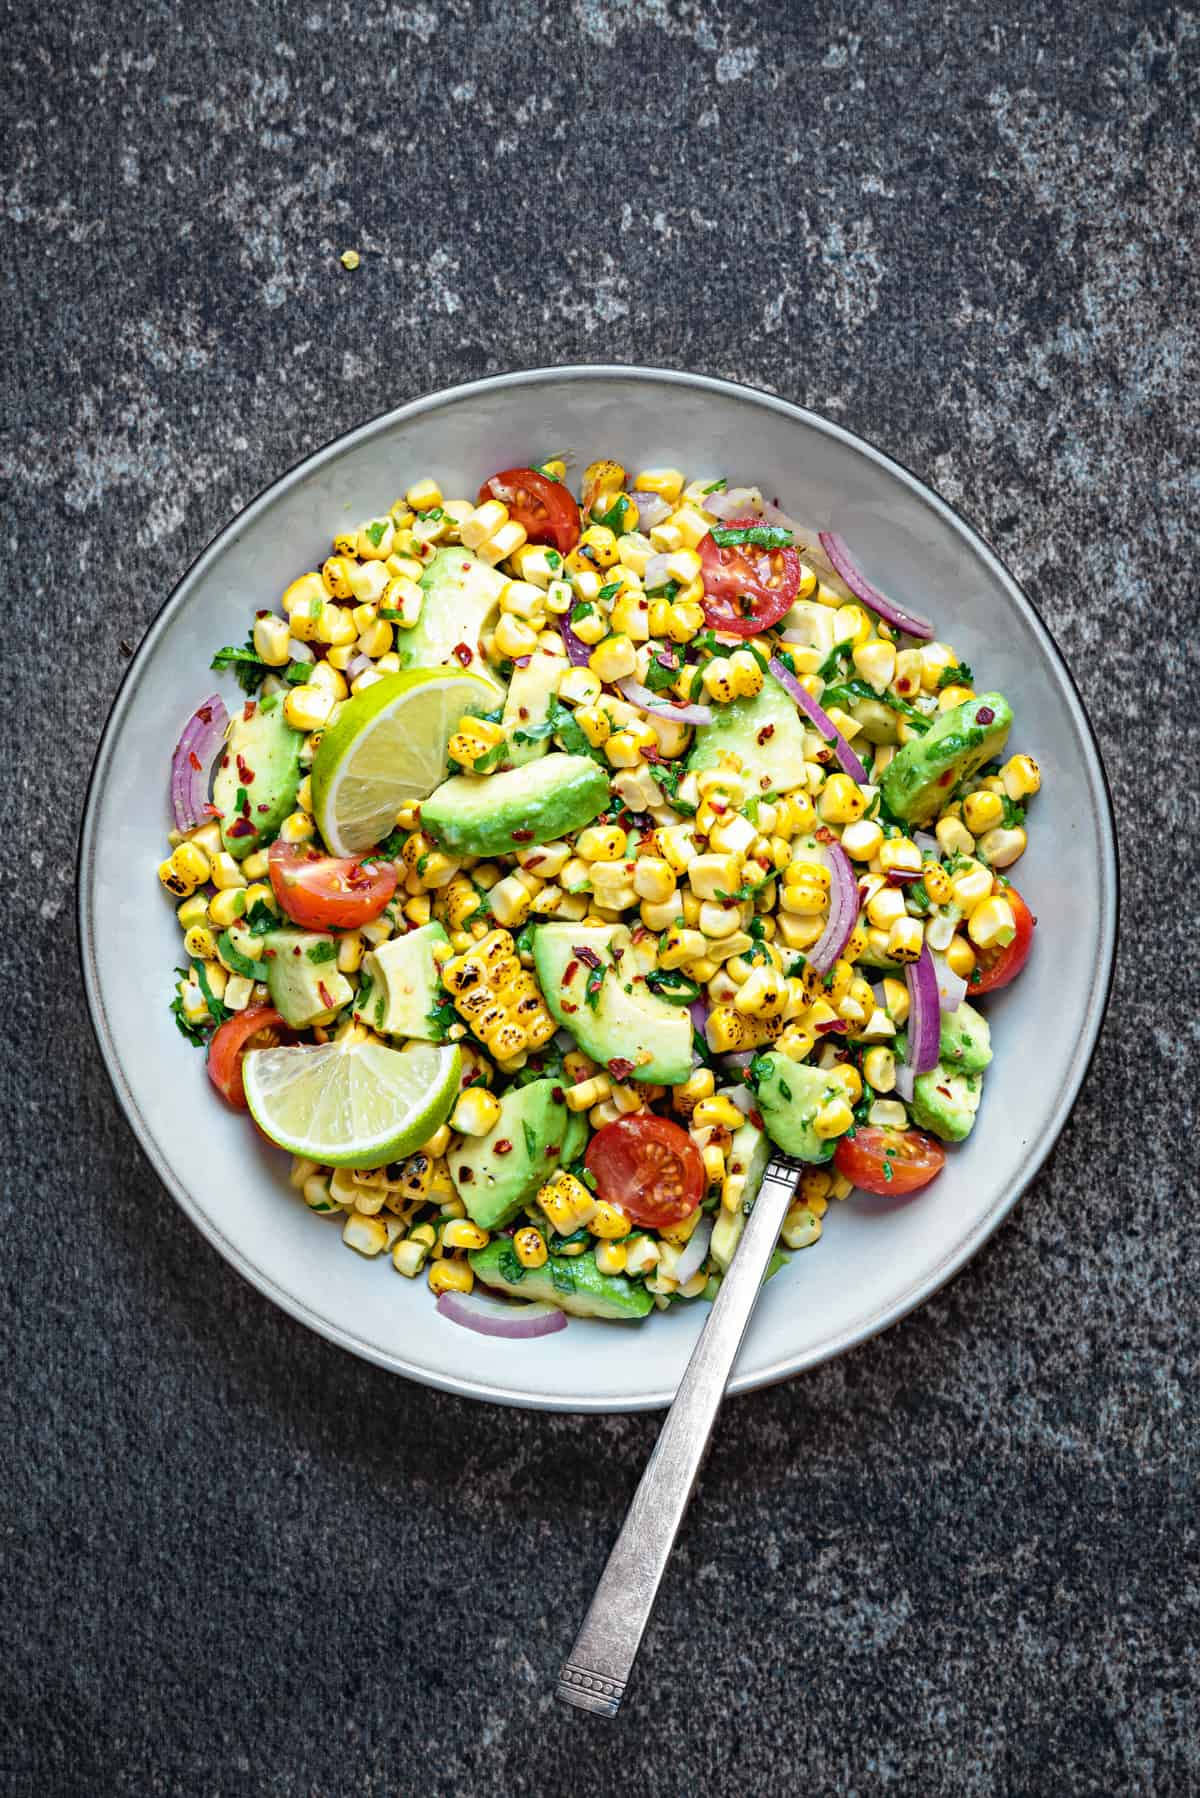 Summer corn avocado salad served in grey earthen bowl with a spoon into it